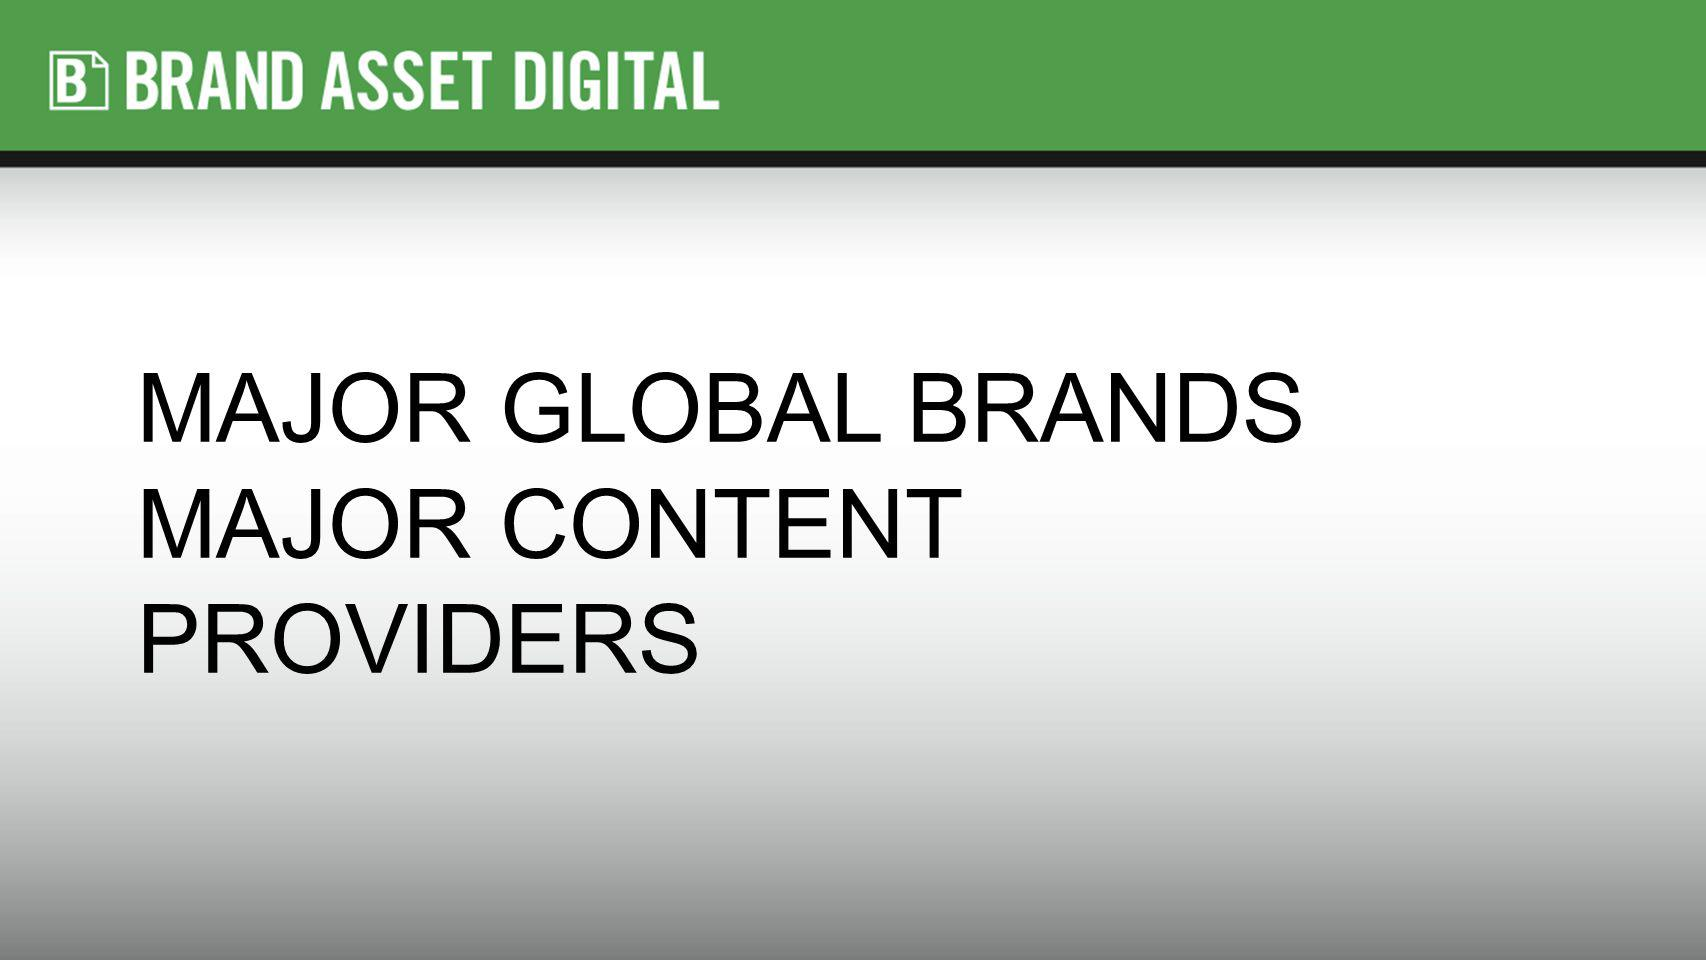 MAJOR GLOBAL BRANDS MAJOR CONTENT PROVIDERS